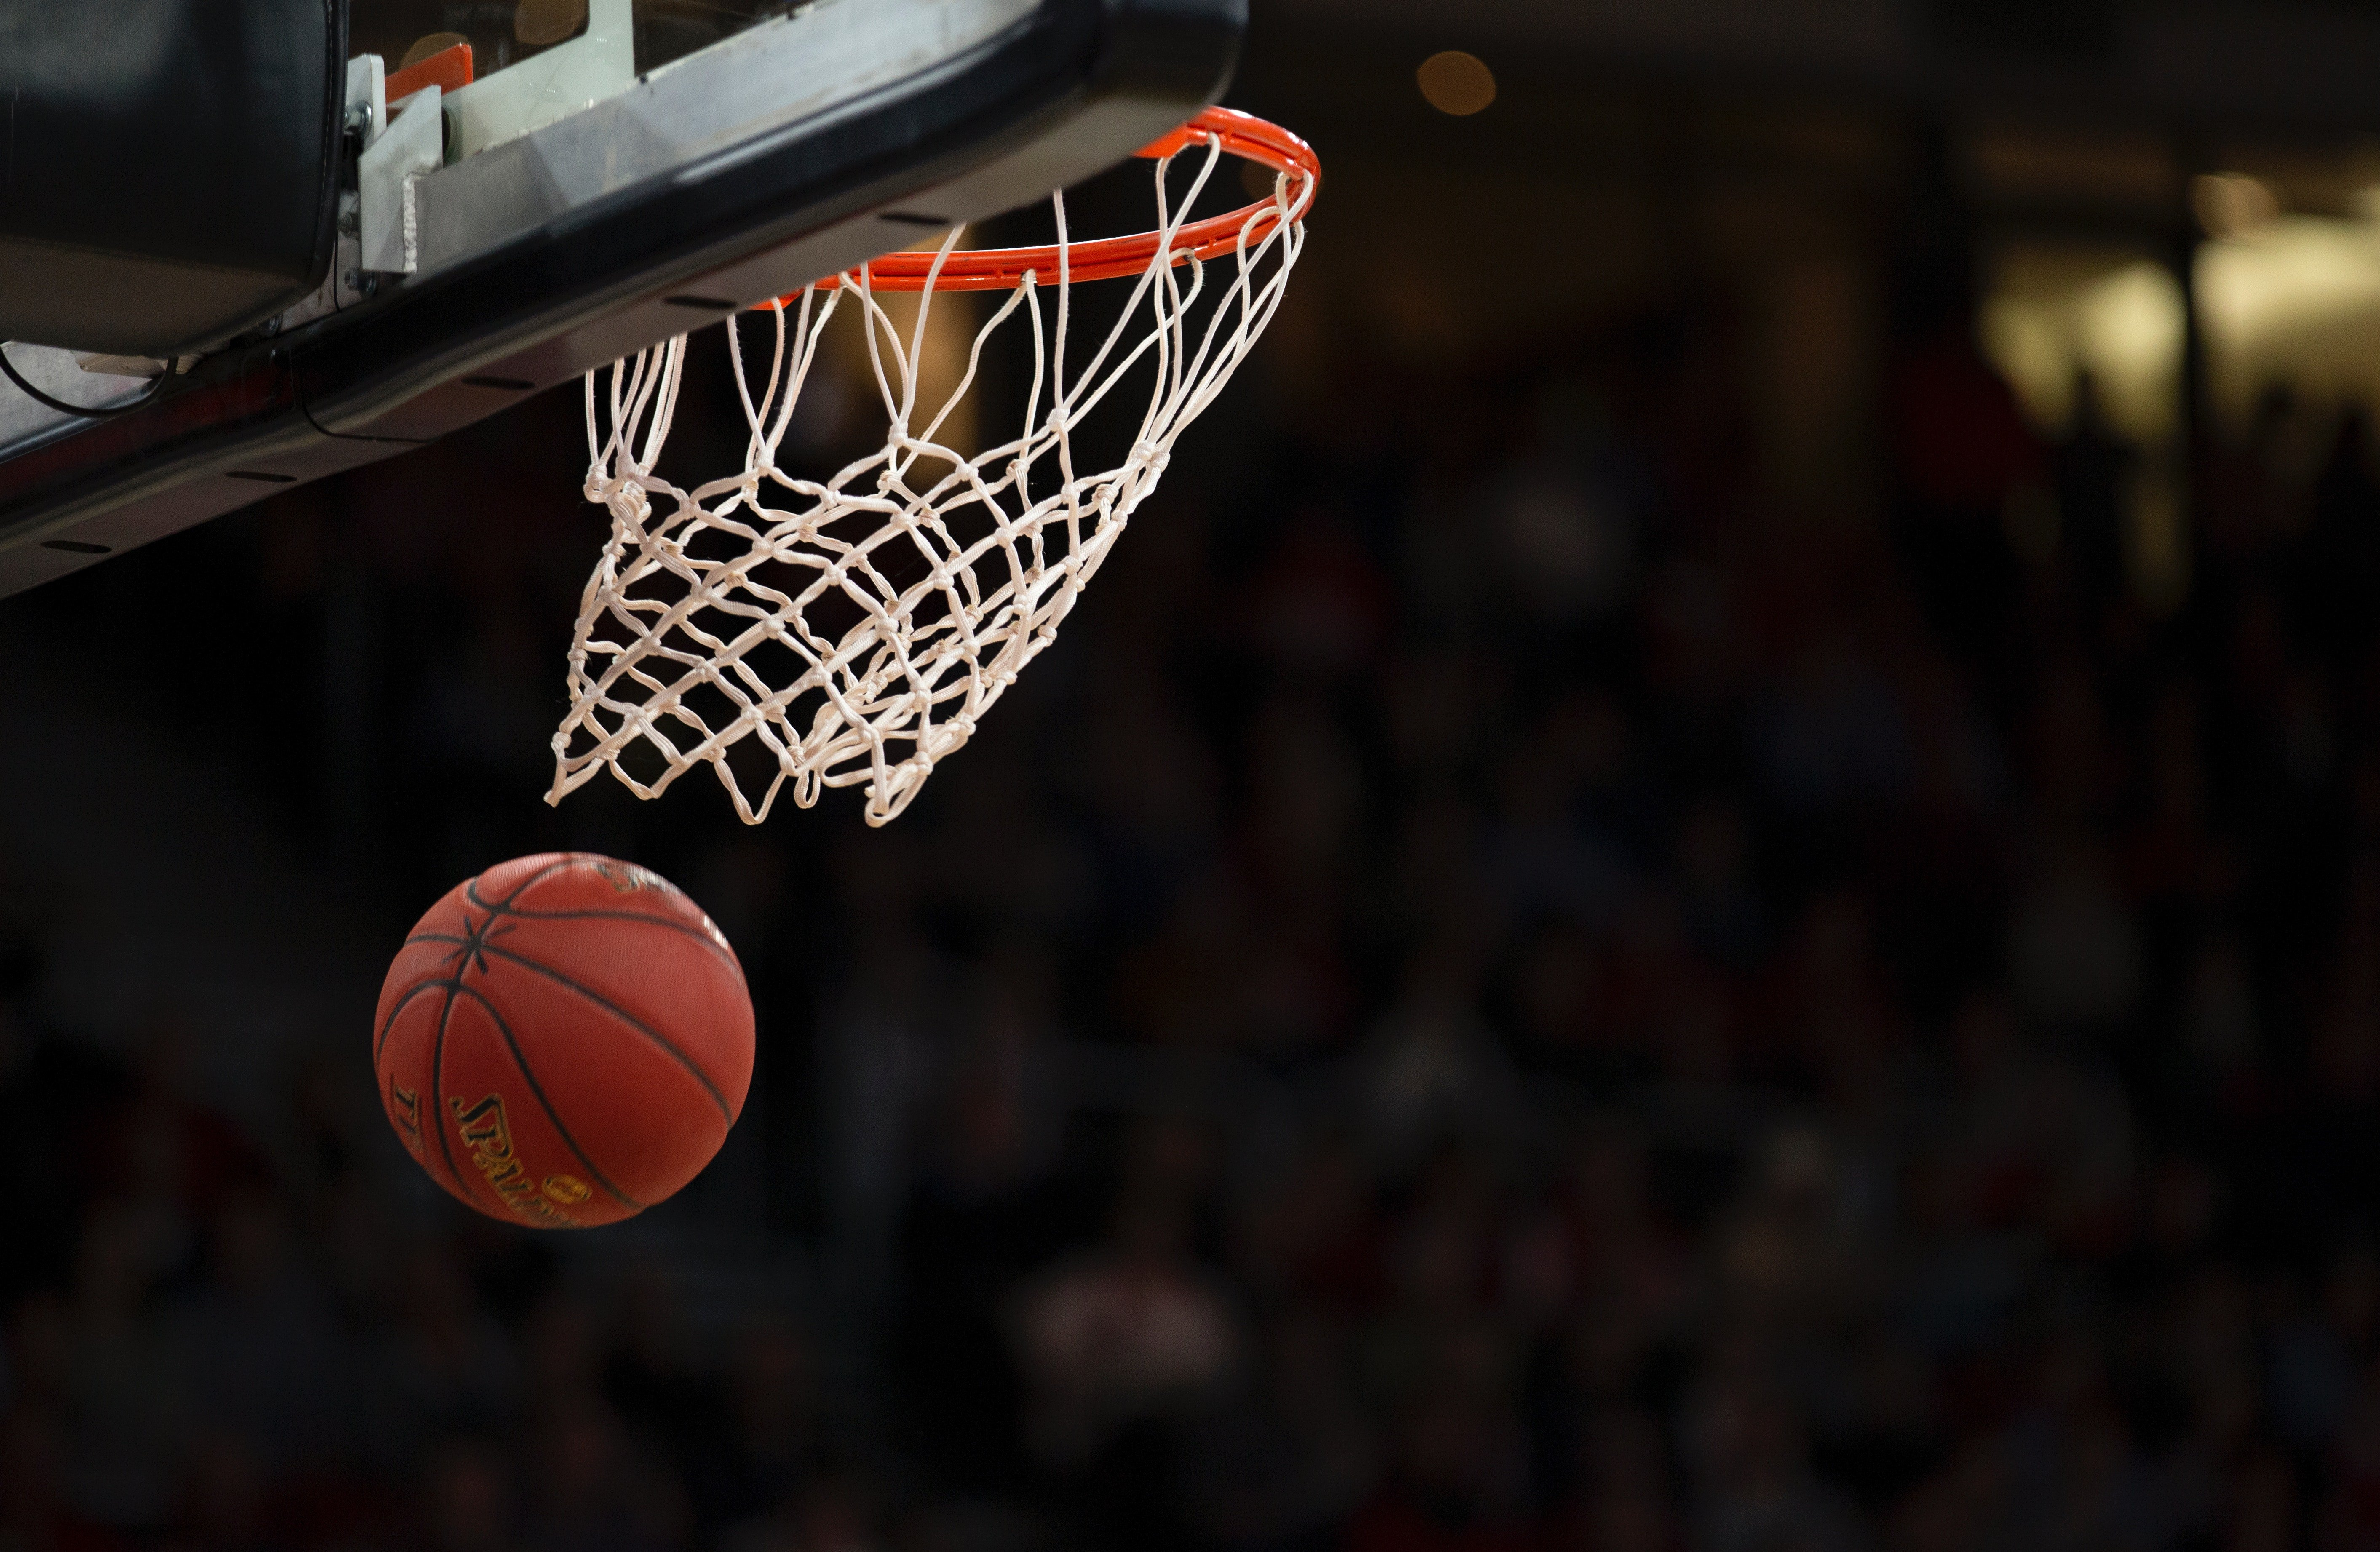 Picture of a Spalding basketball dropping after going through a white net.   Source: Pexels/Markus Spikse